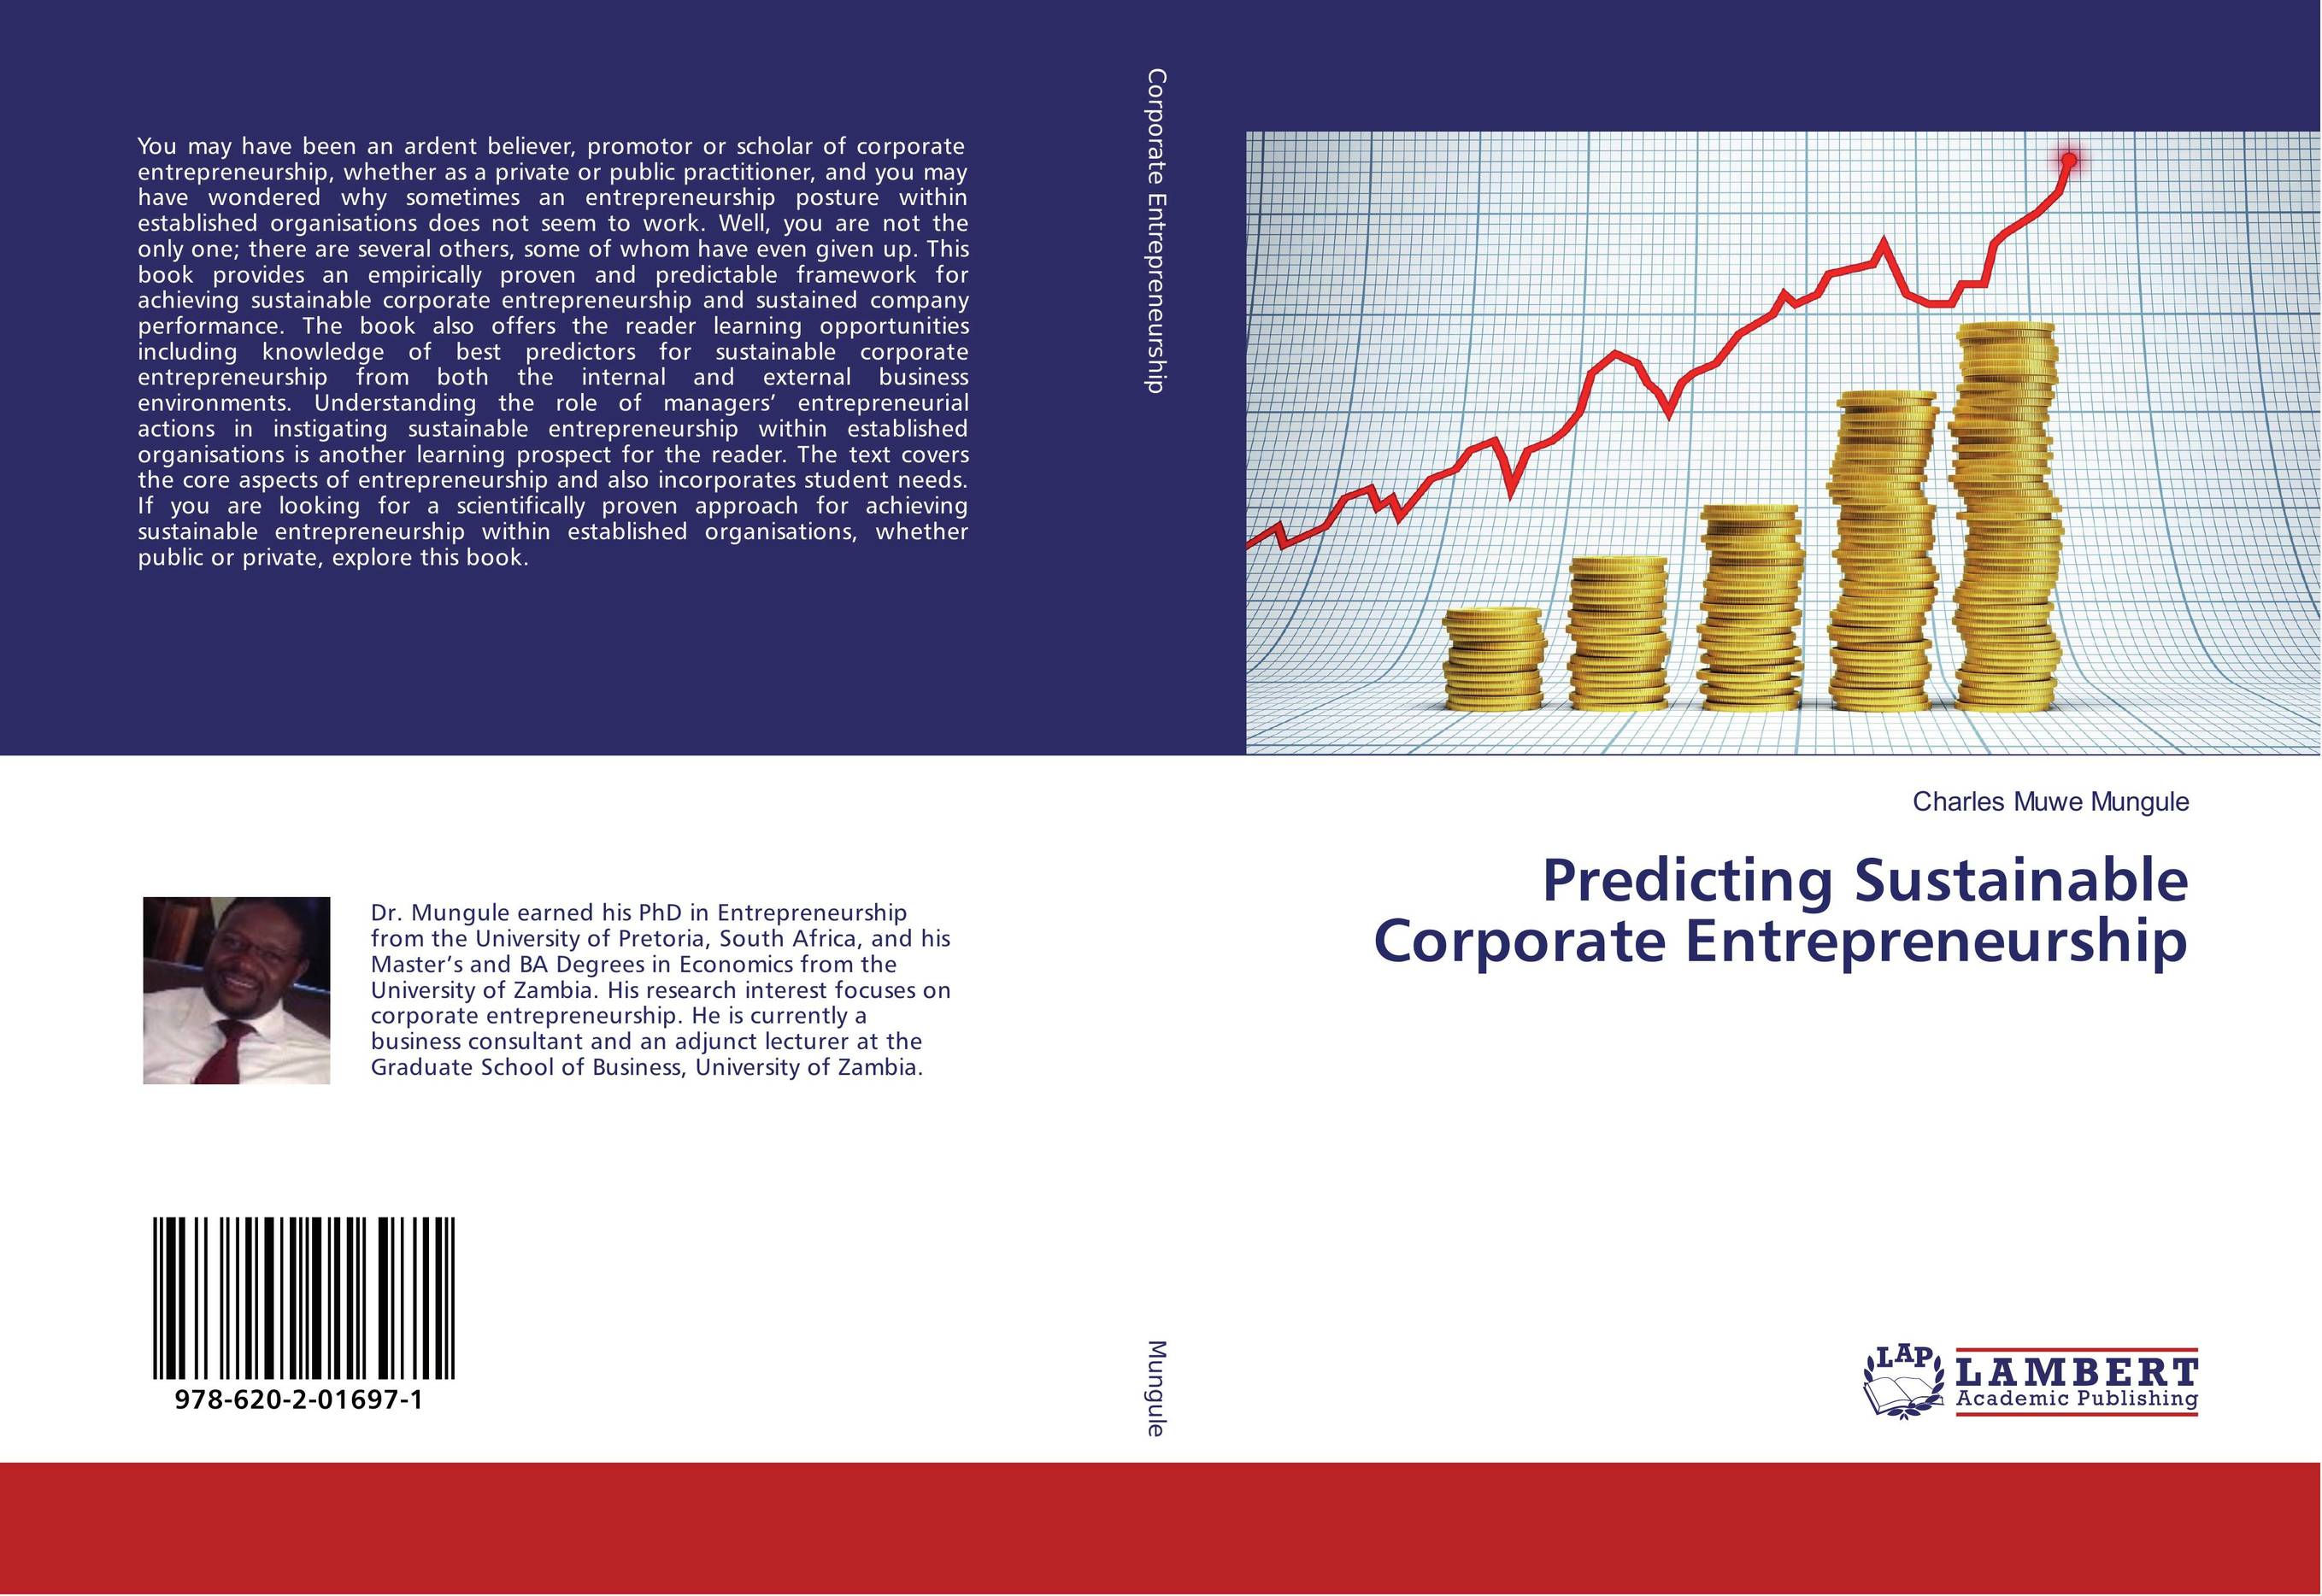 corporate entrepreneurship 3 essay Entrepreneurship is the process of designing, launching and running a new business, which is often initially a small businessthe people who create these businesses are called entrepreneurs [need quotation to verify]entrepreneurship has been described as the capacity and willingness to develop, organize and manage a business venture along with any of its risks in order to make a profit.